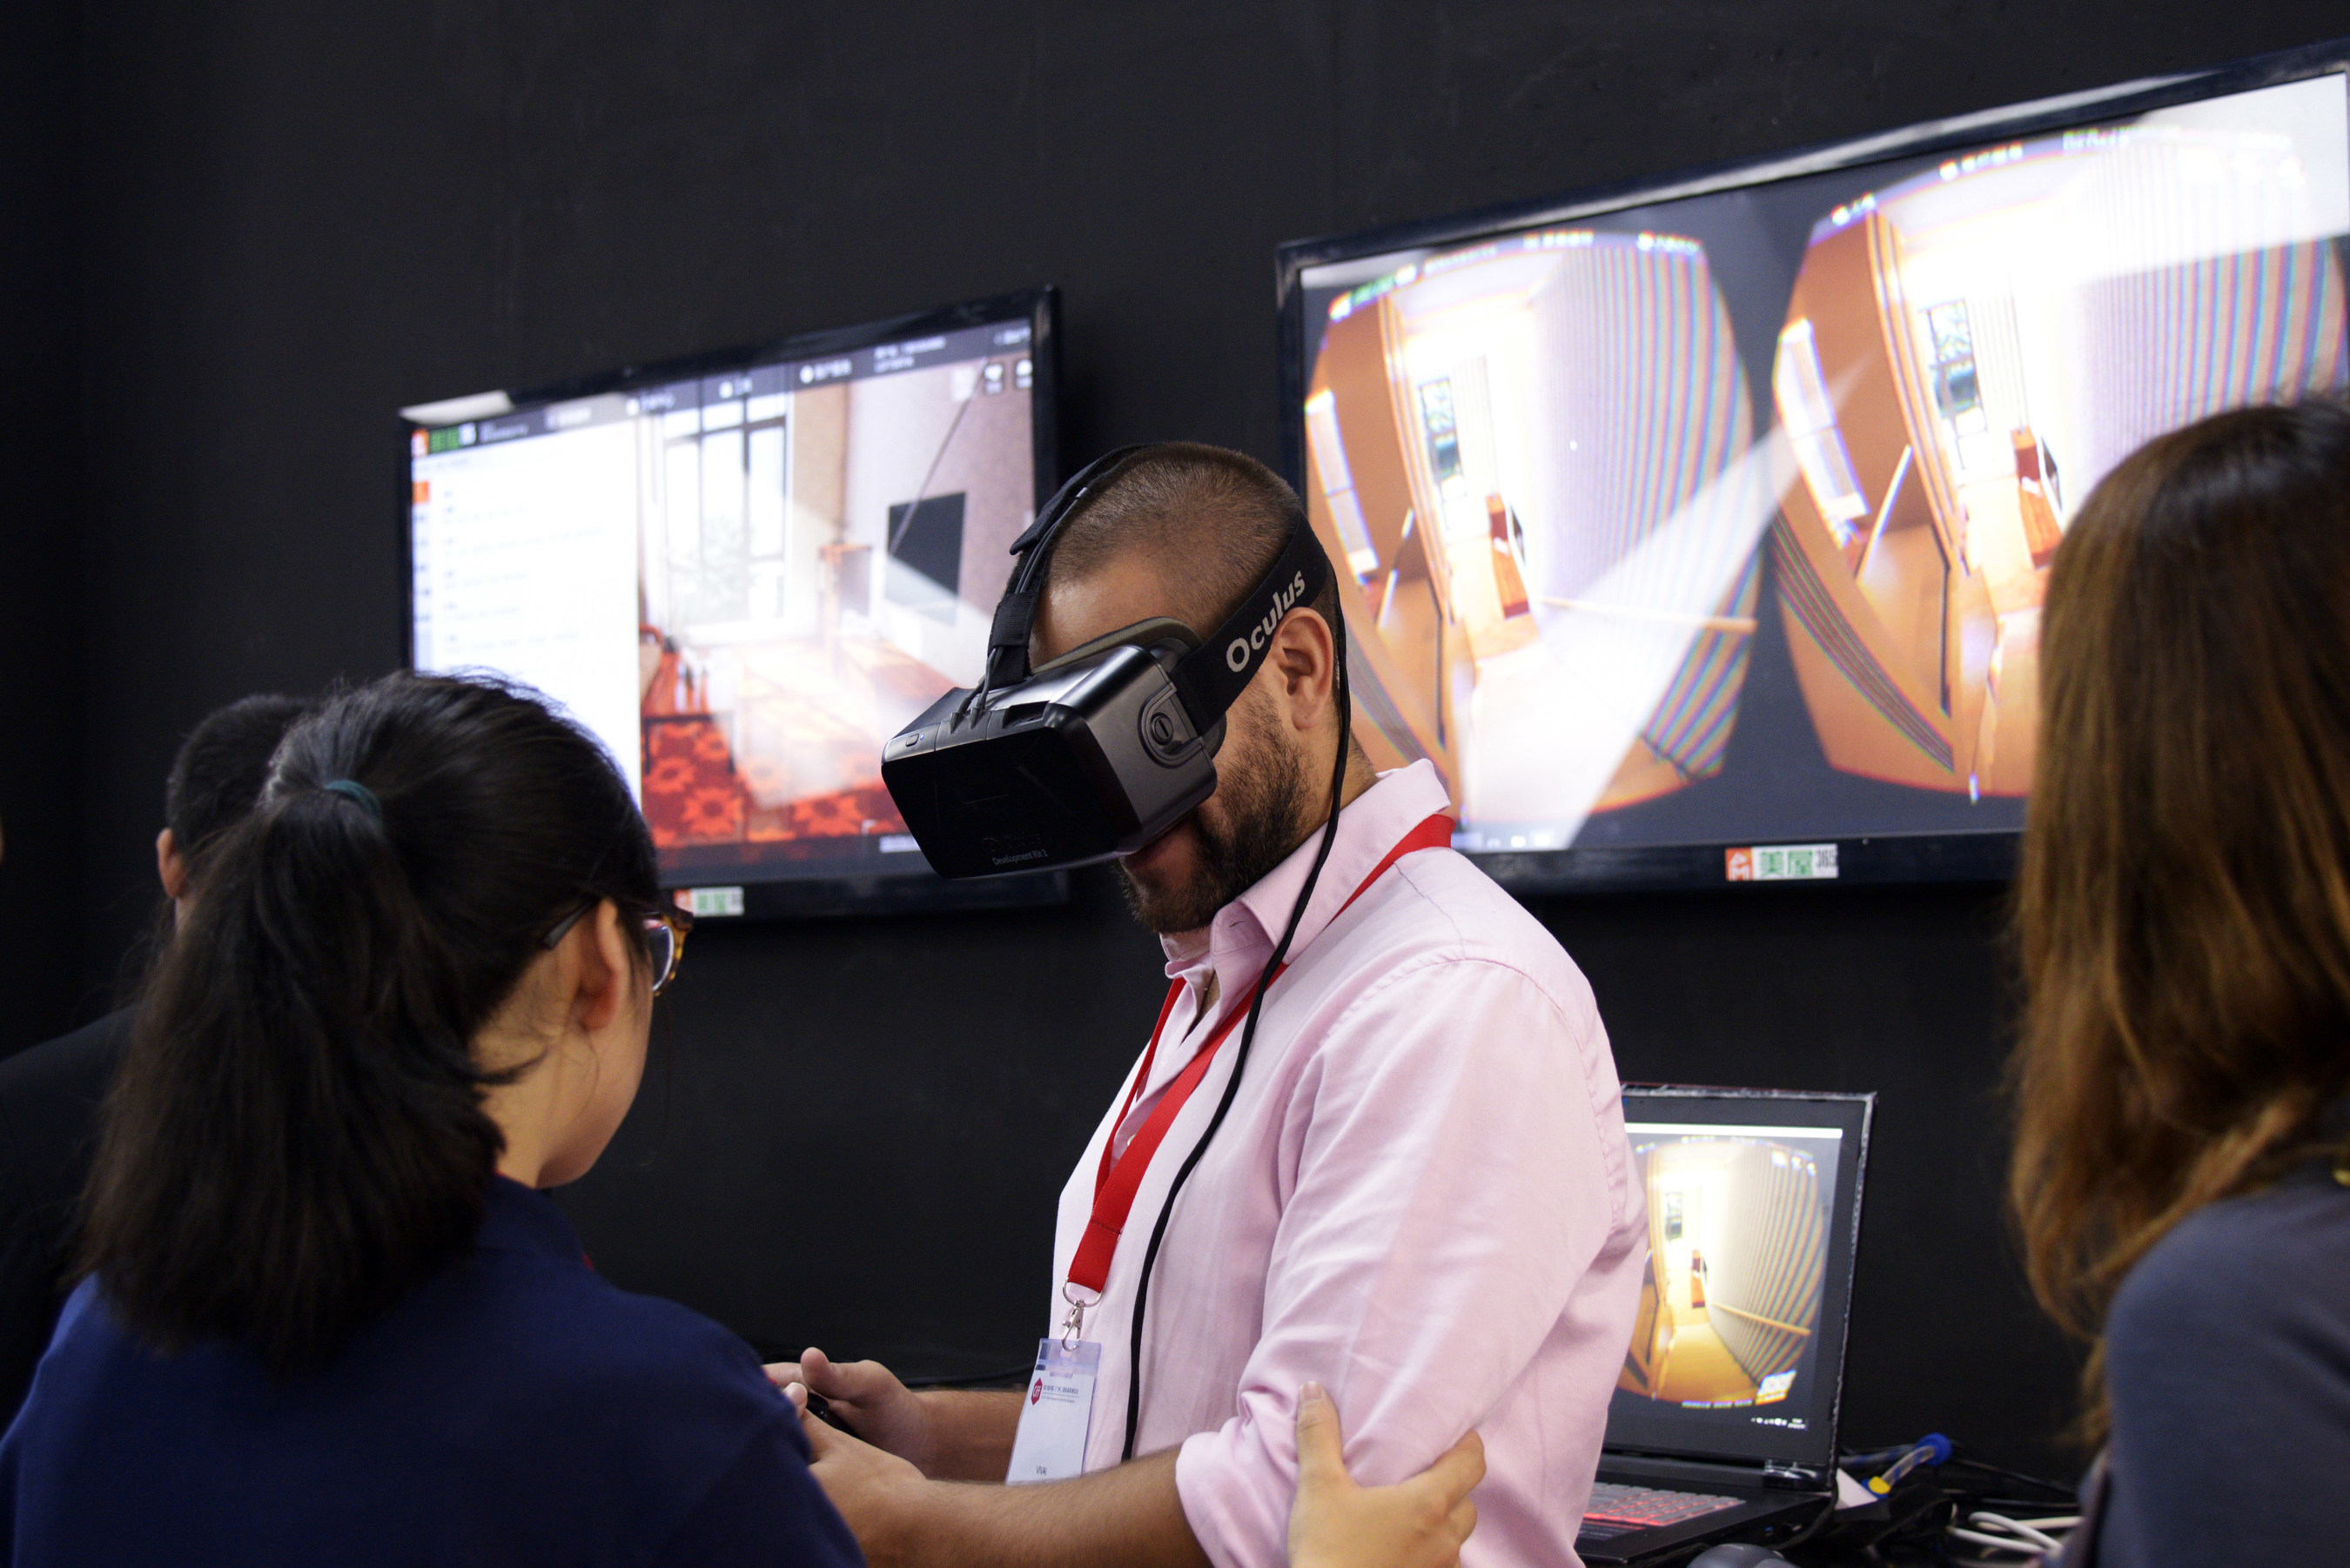 """At CIFF (Guangzhou) 2016, Landbond released its """"fitting room"""" for furniture which allows customers to """"try on"""" the furniture in their own home using the VR headset."""